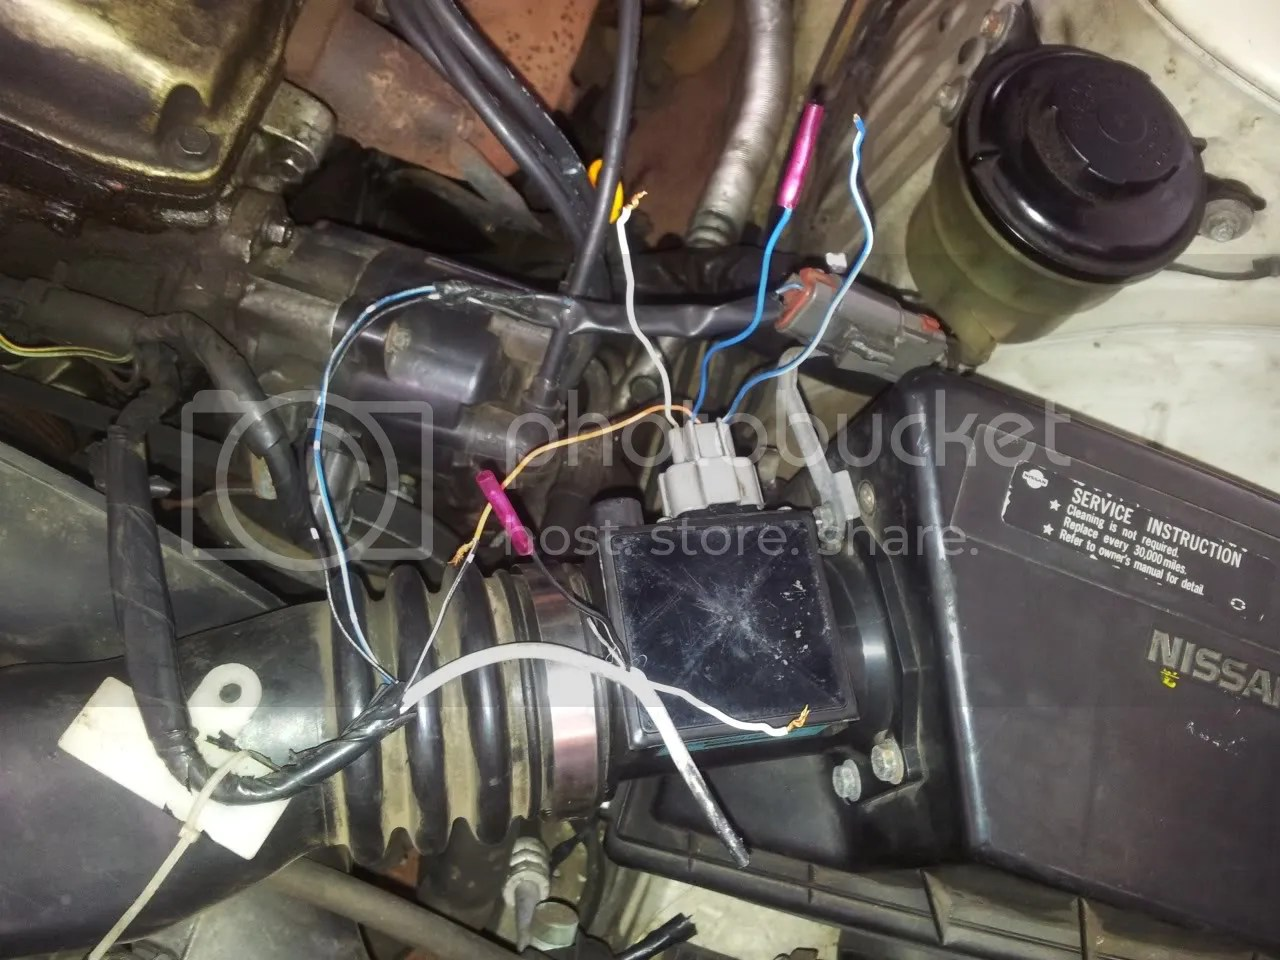 hight resolution of zenki how to fix this wiring harness nissan 240sx forums